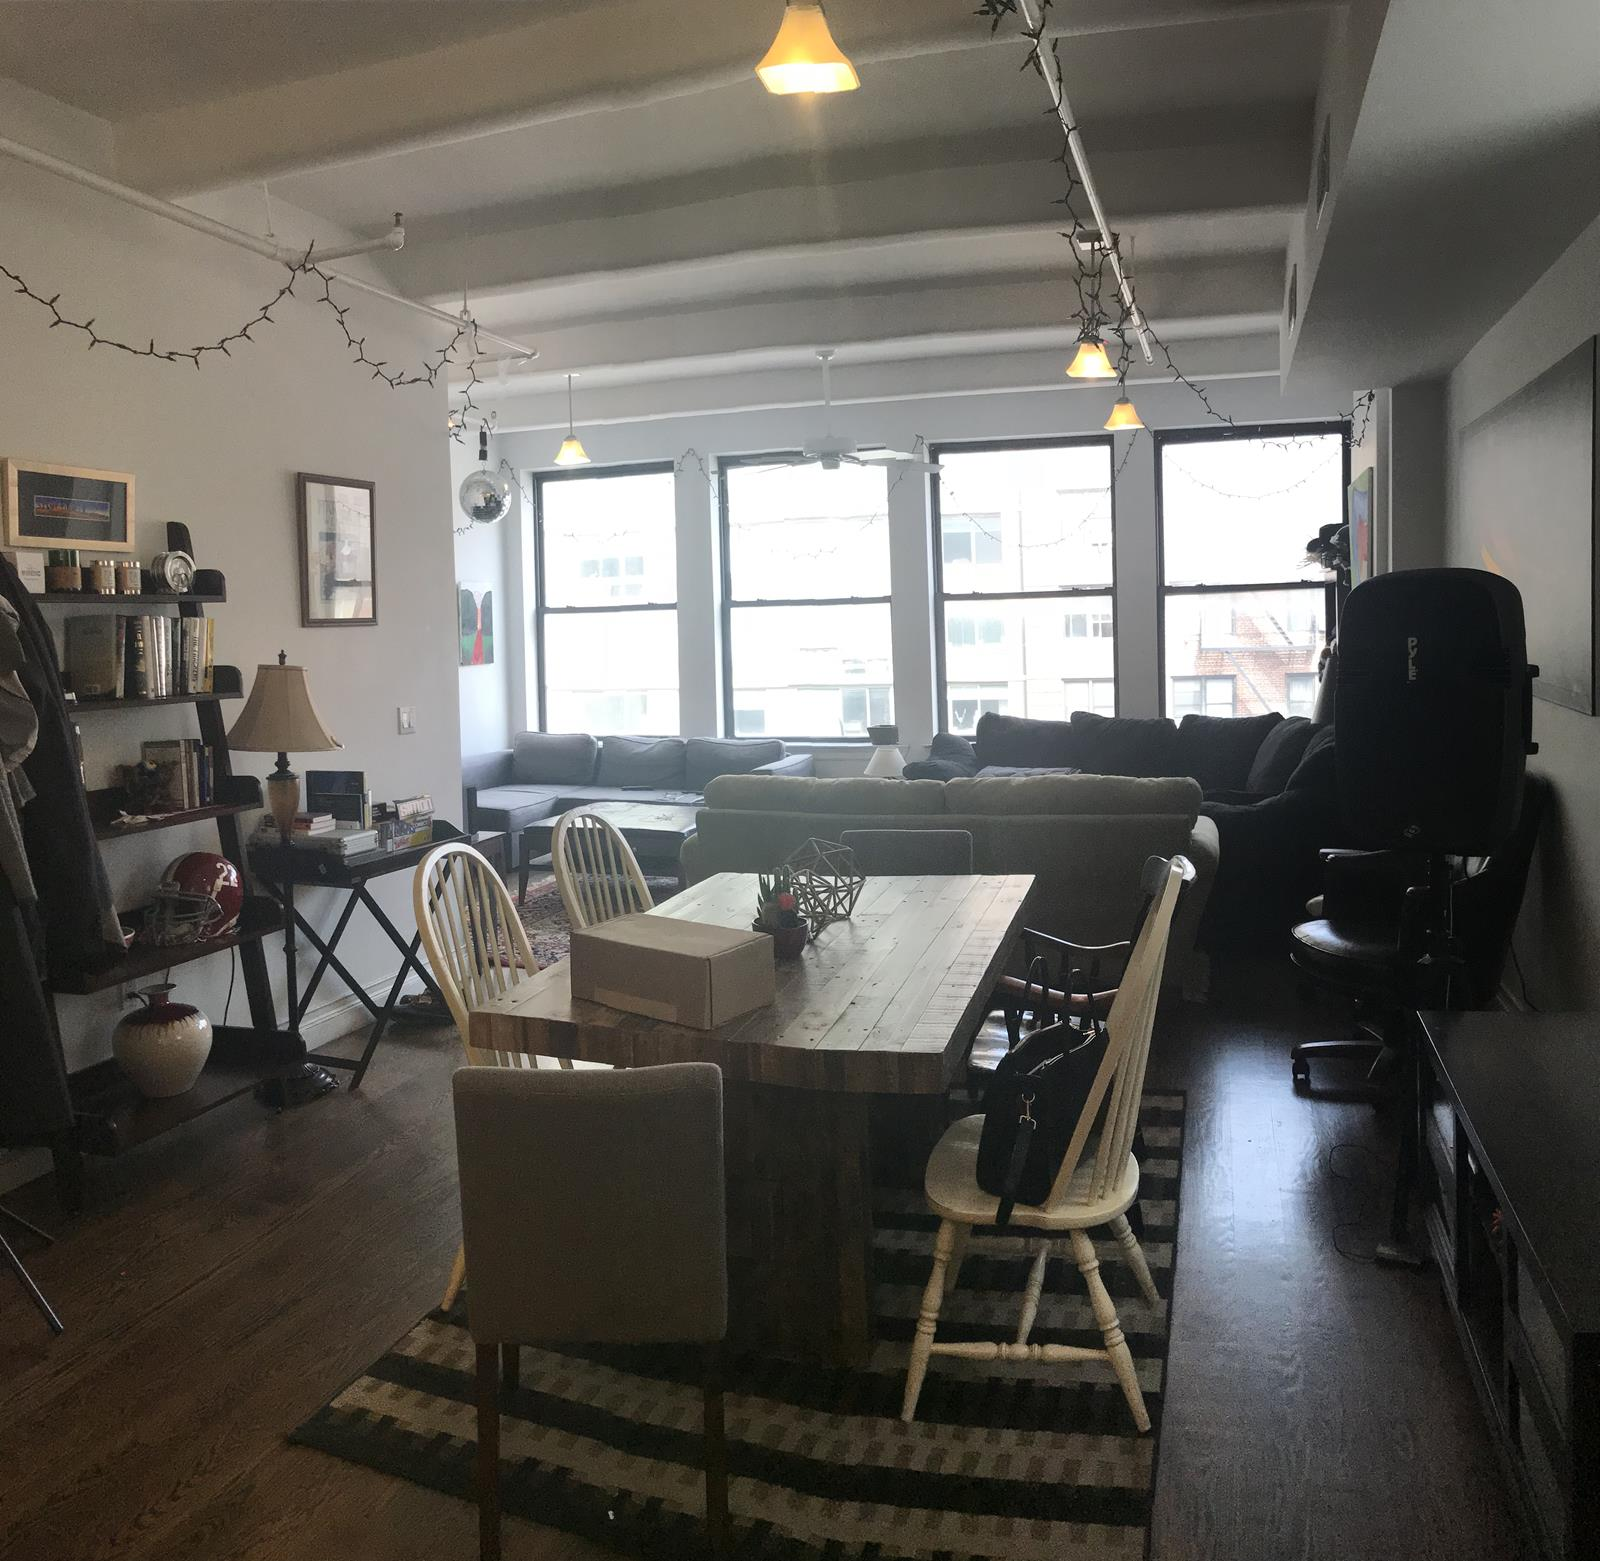 Rentals for Rent at 110 West 14th Street 4 110 West 14th Street New York, New York 10011 United States